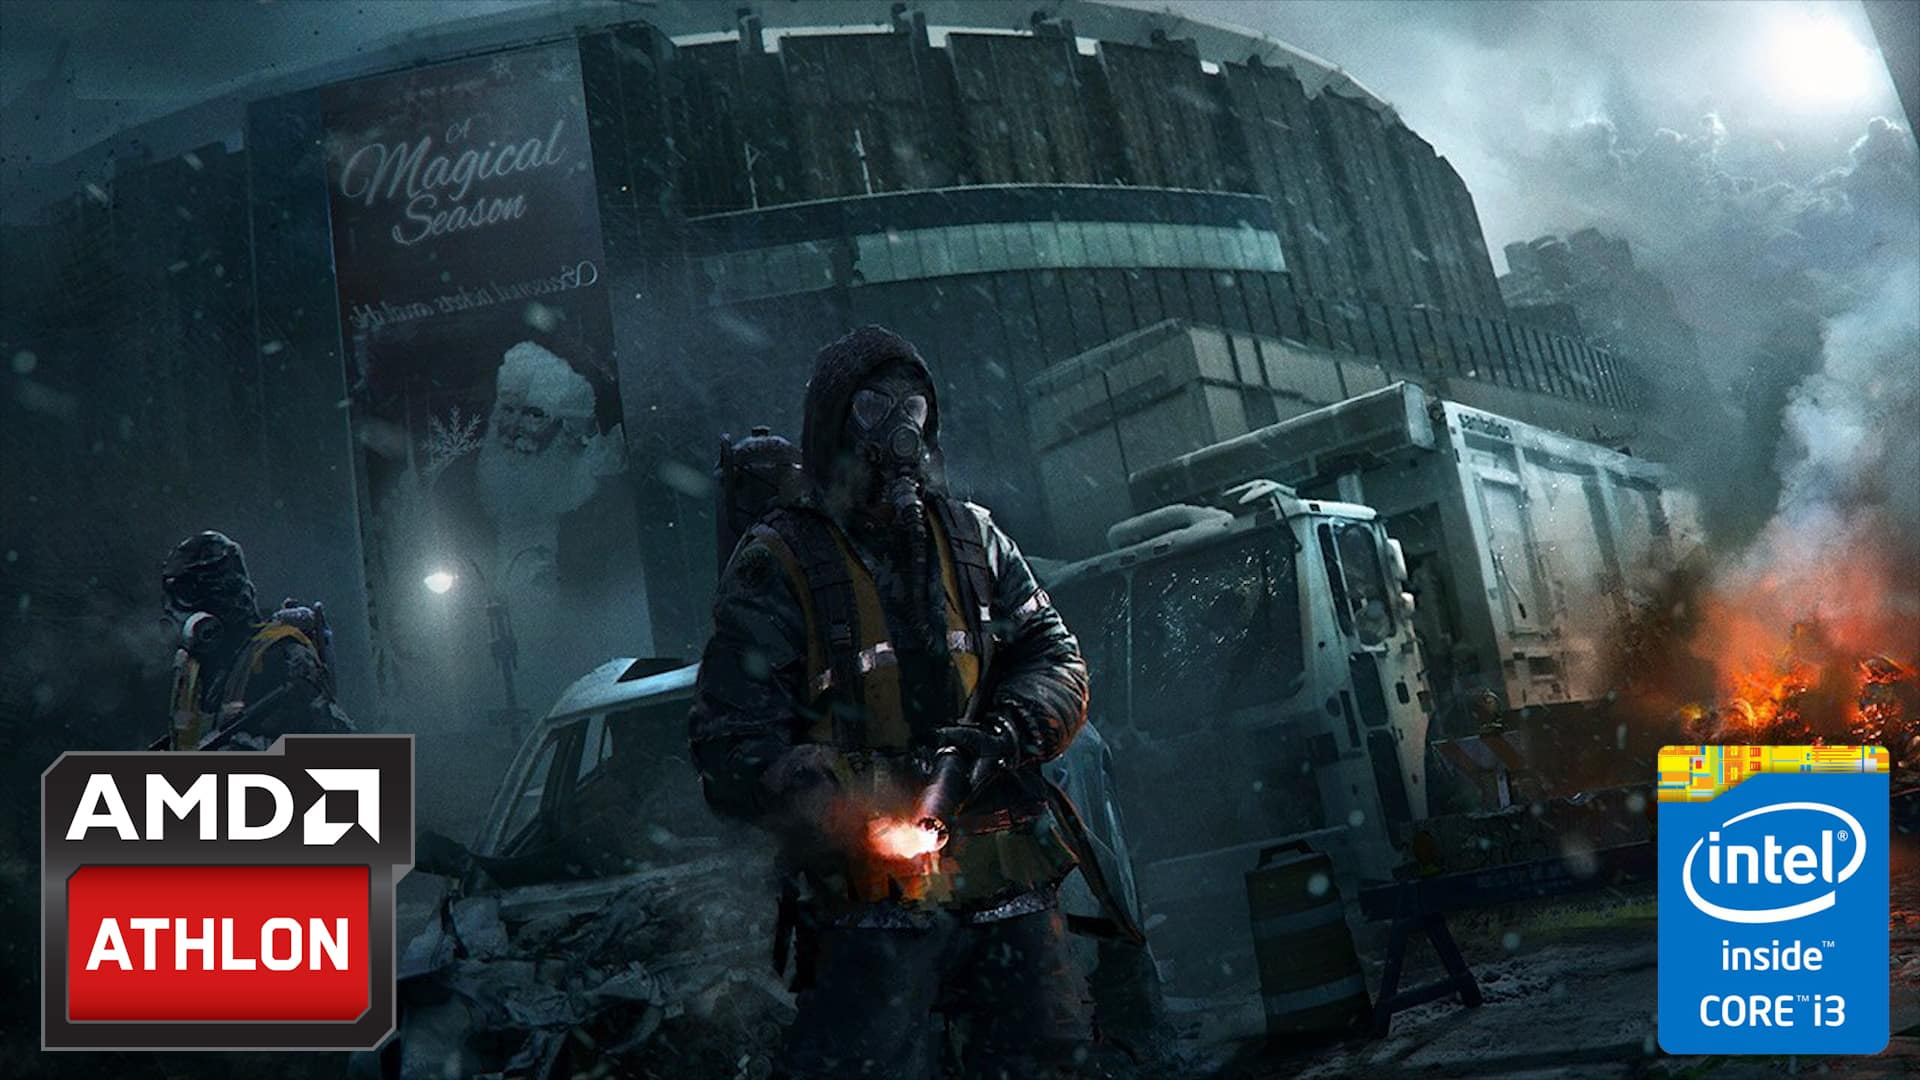 AMD vs Intel - Video confronto - The Division GTX 950